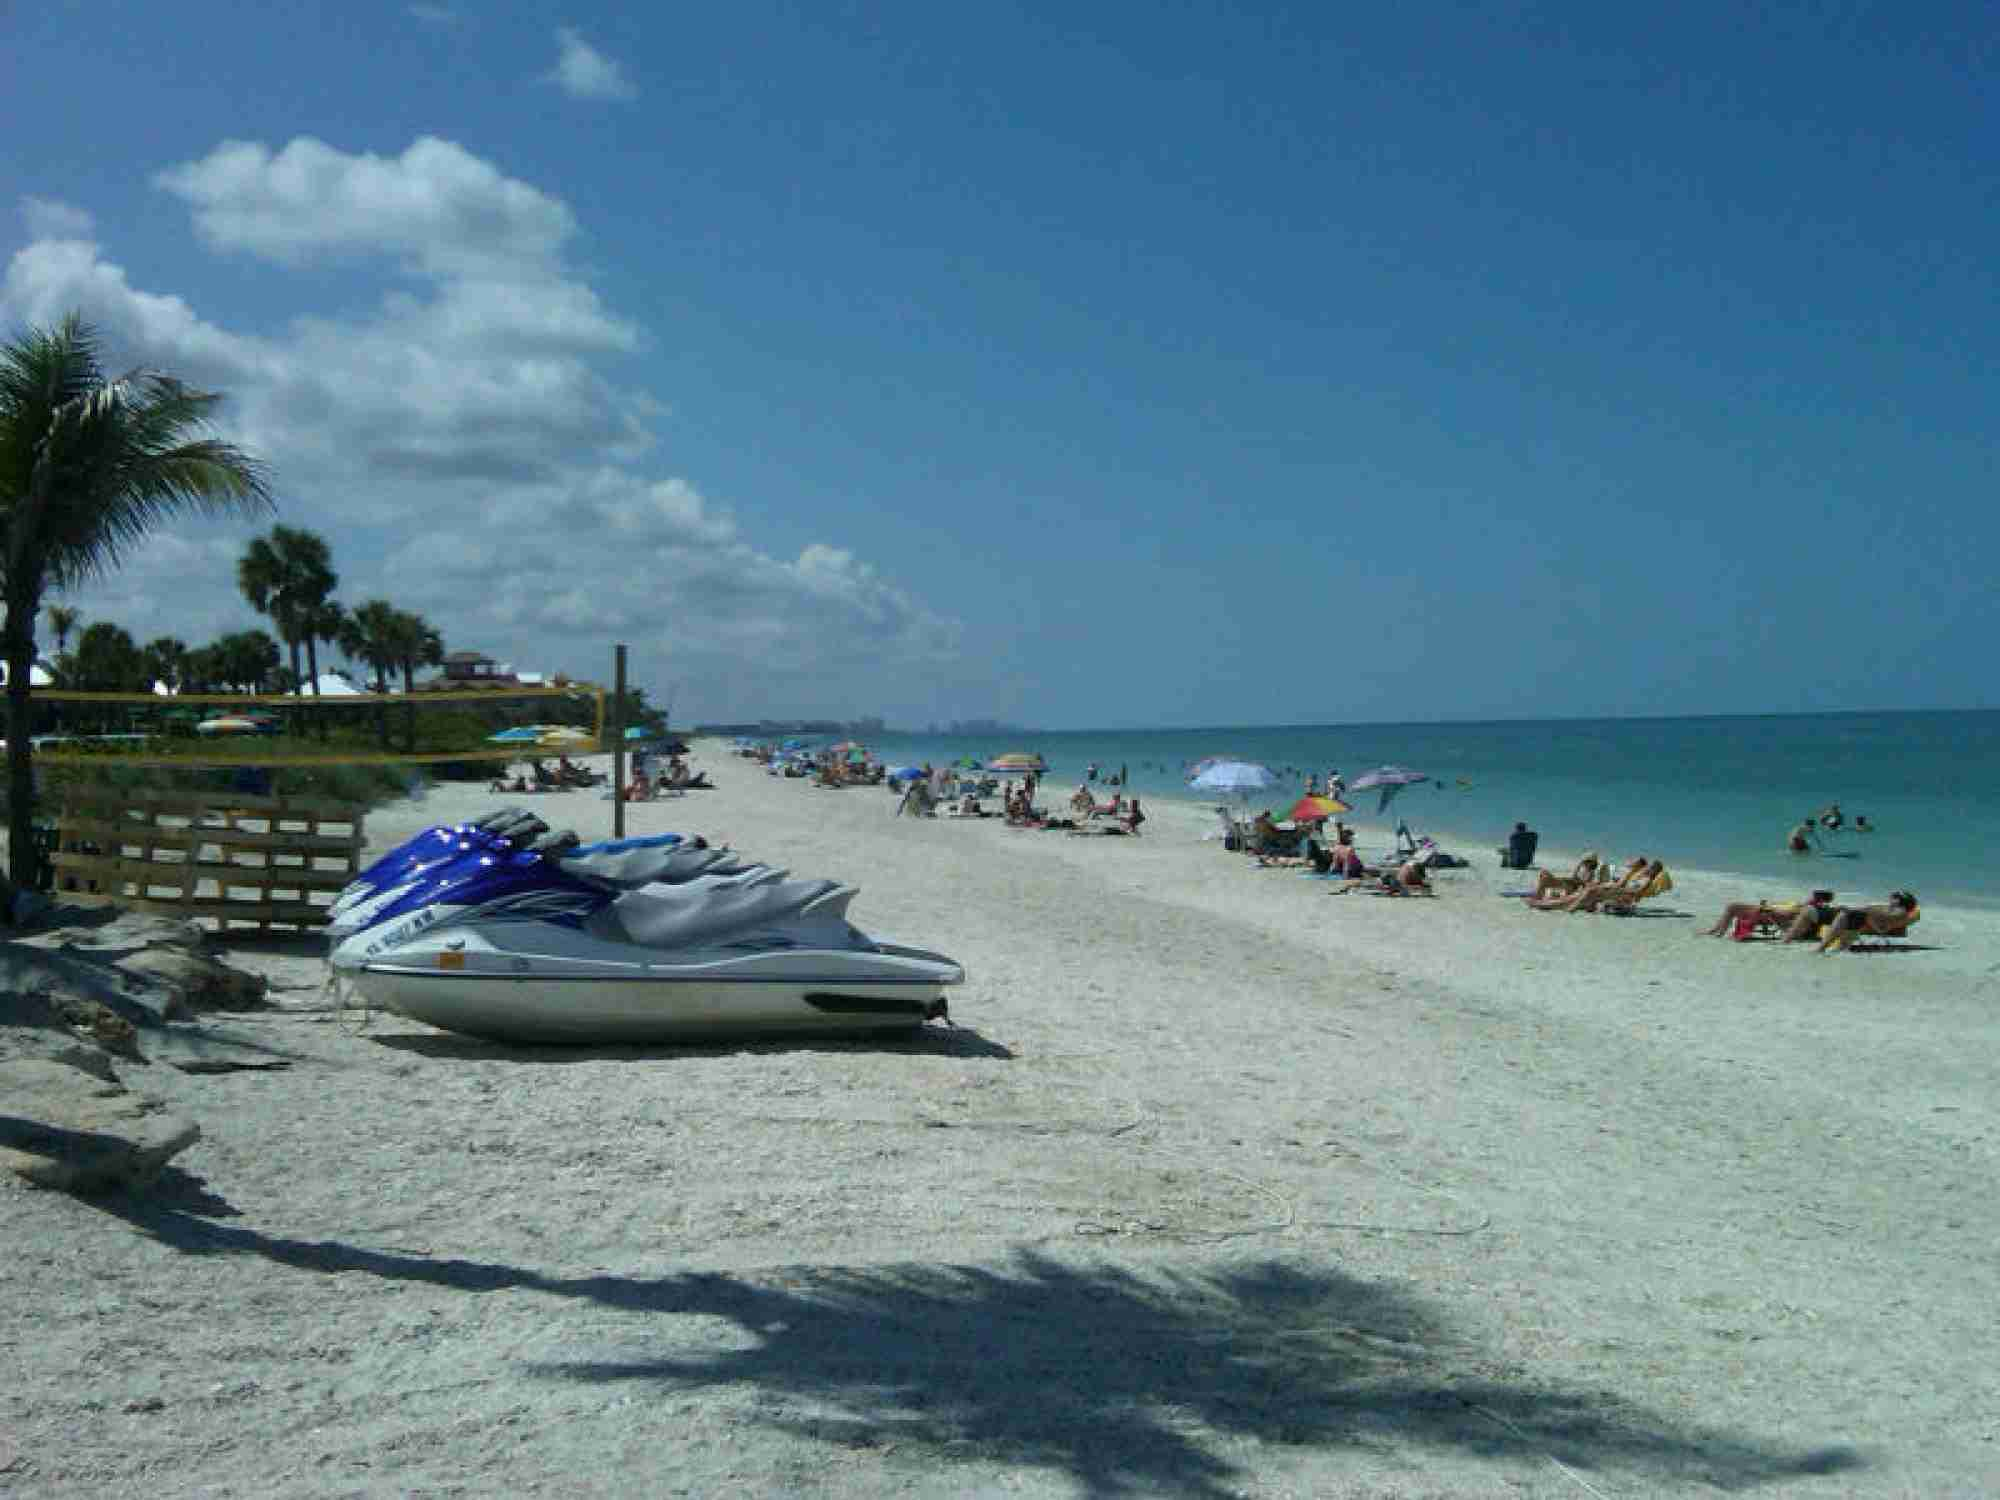 Bonita Beach is only 180 seconds away!